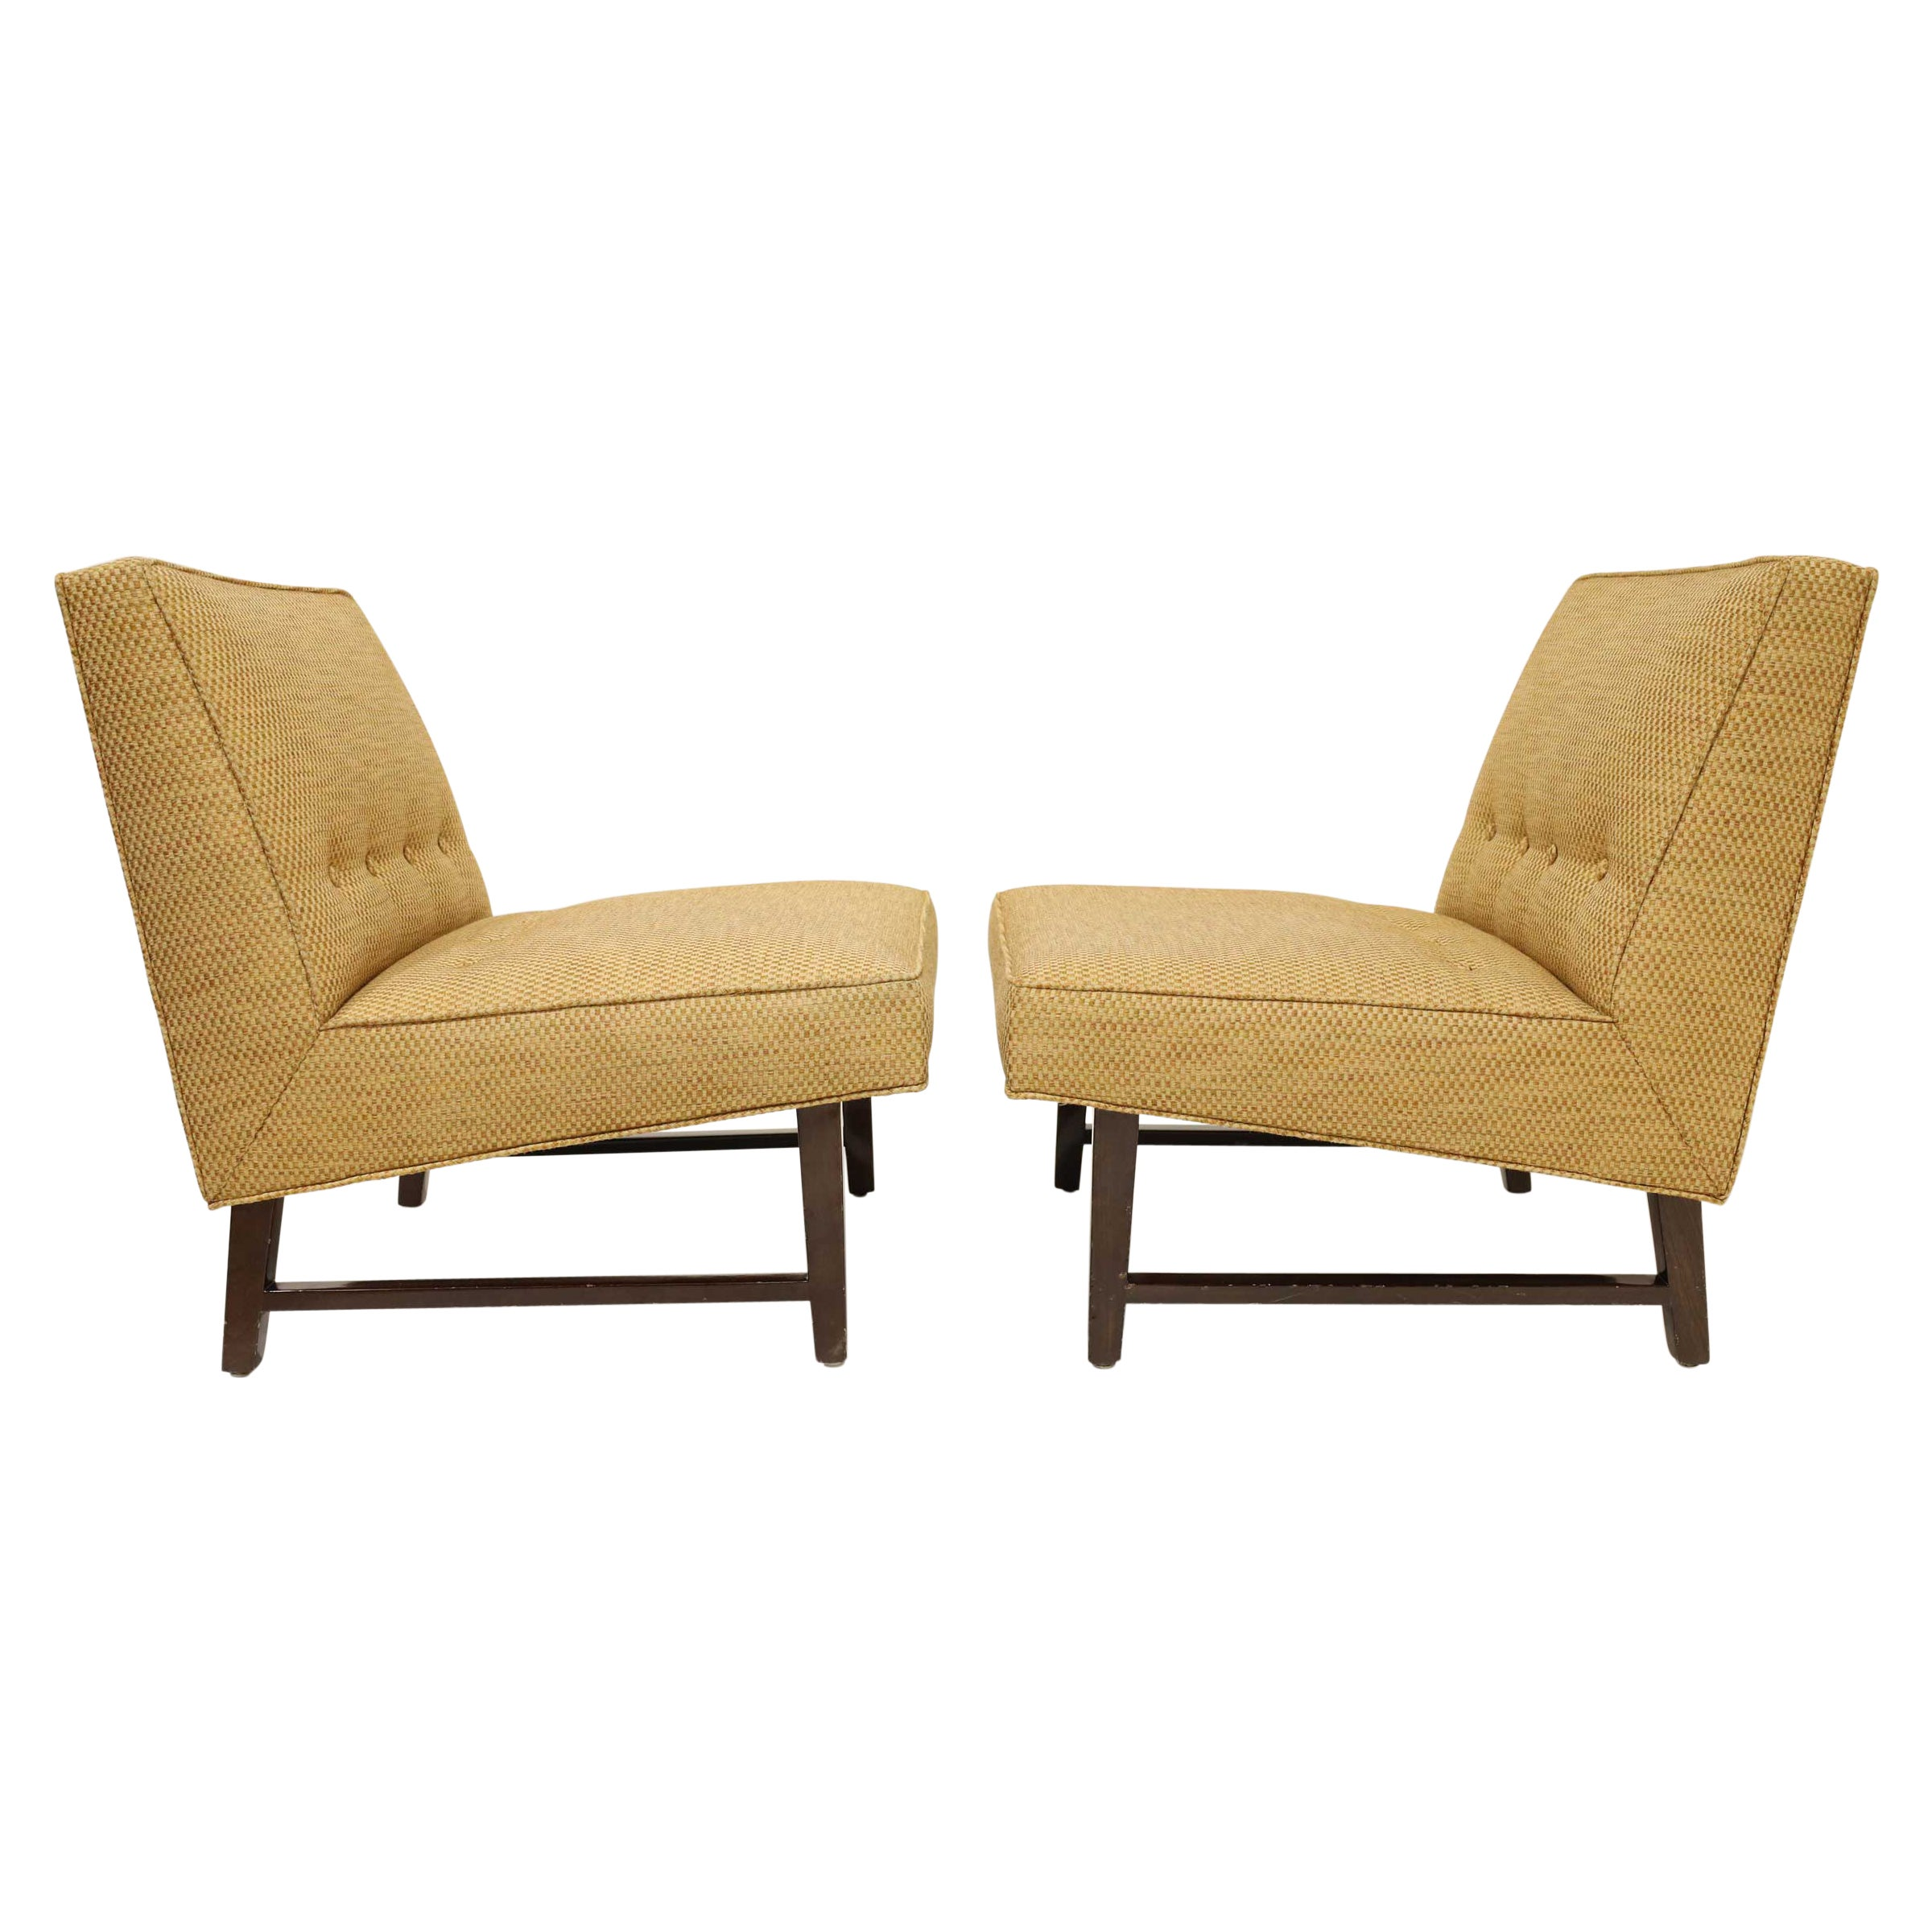 Pair of Edward Wormley for Dunbar Slipper Chairs in Gold Color Upholstery